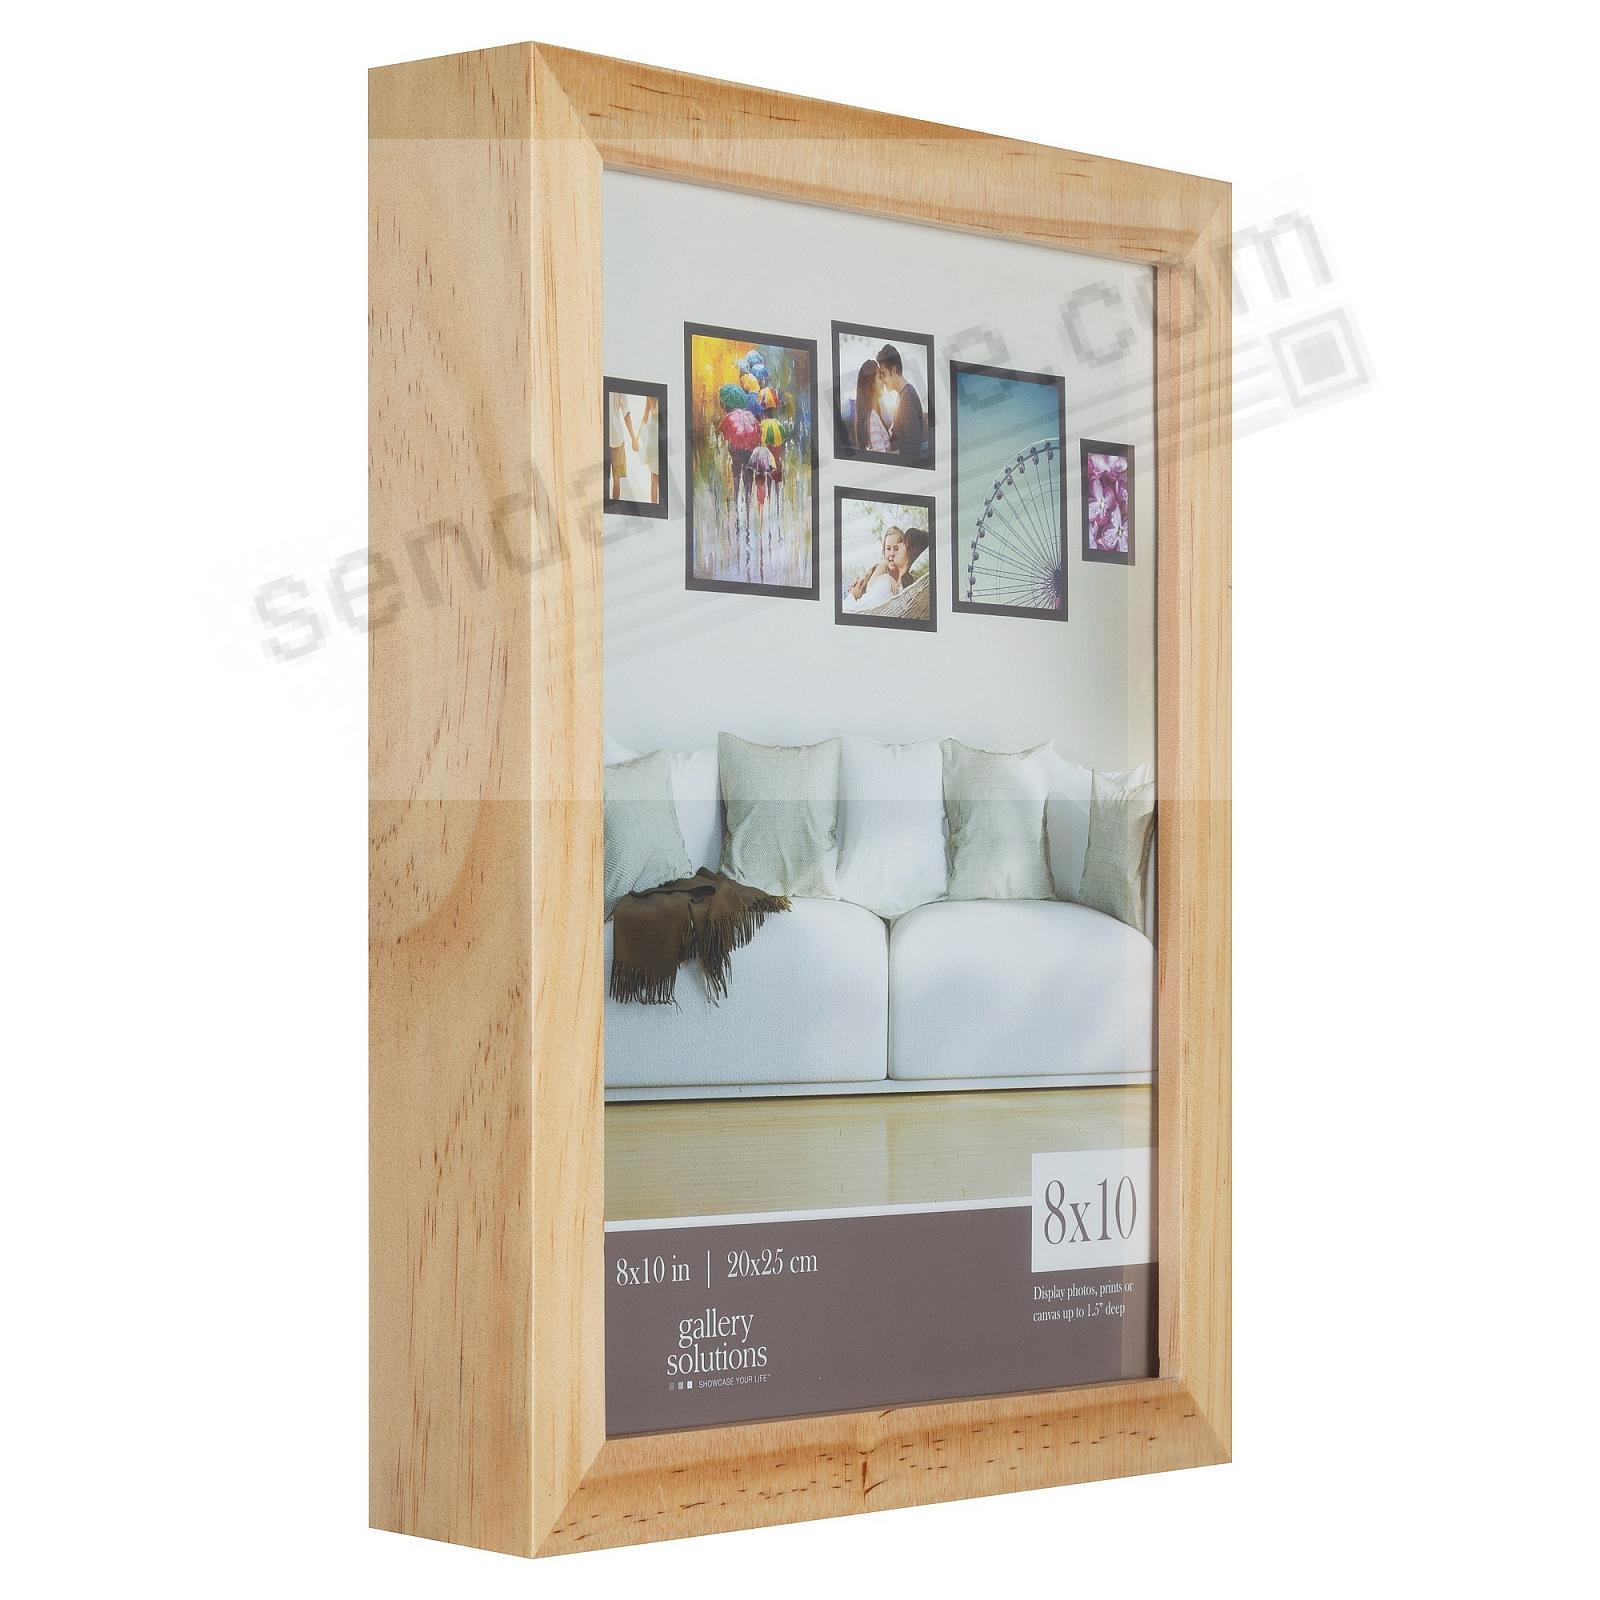 NATURAL GALLERY 8x10 frame by Gallery Solutions®